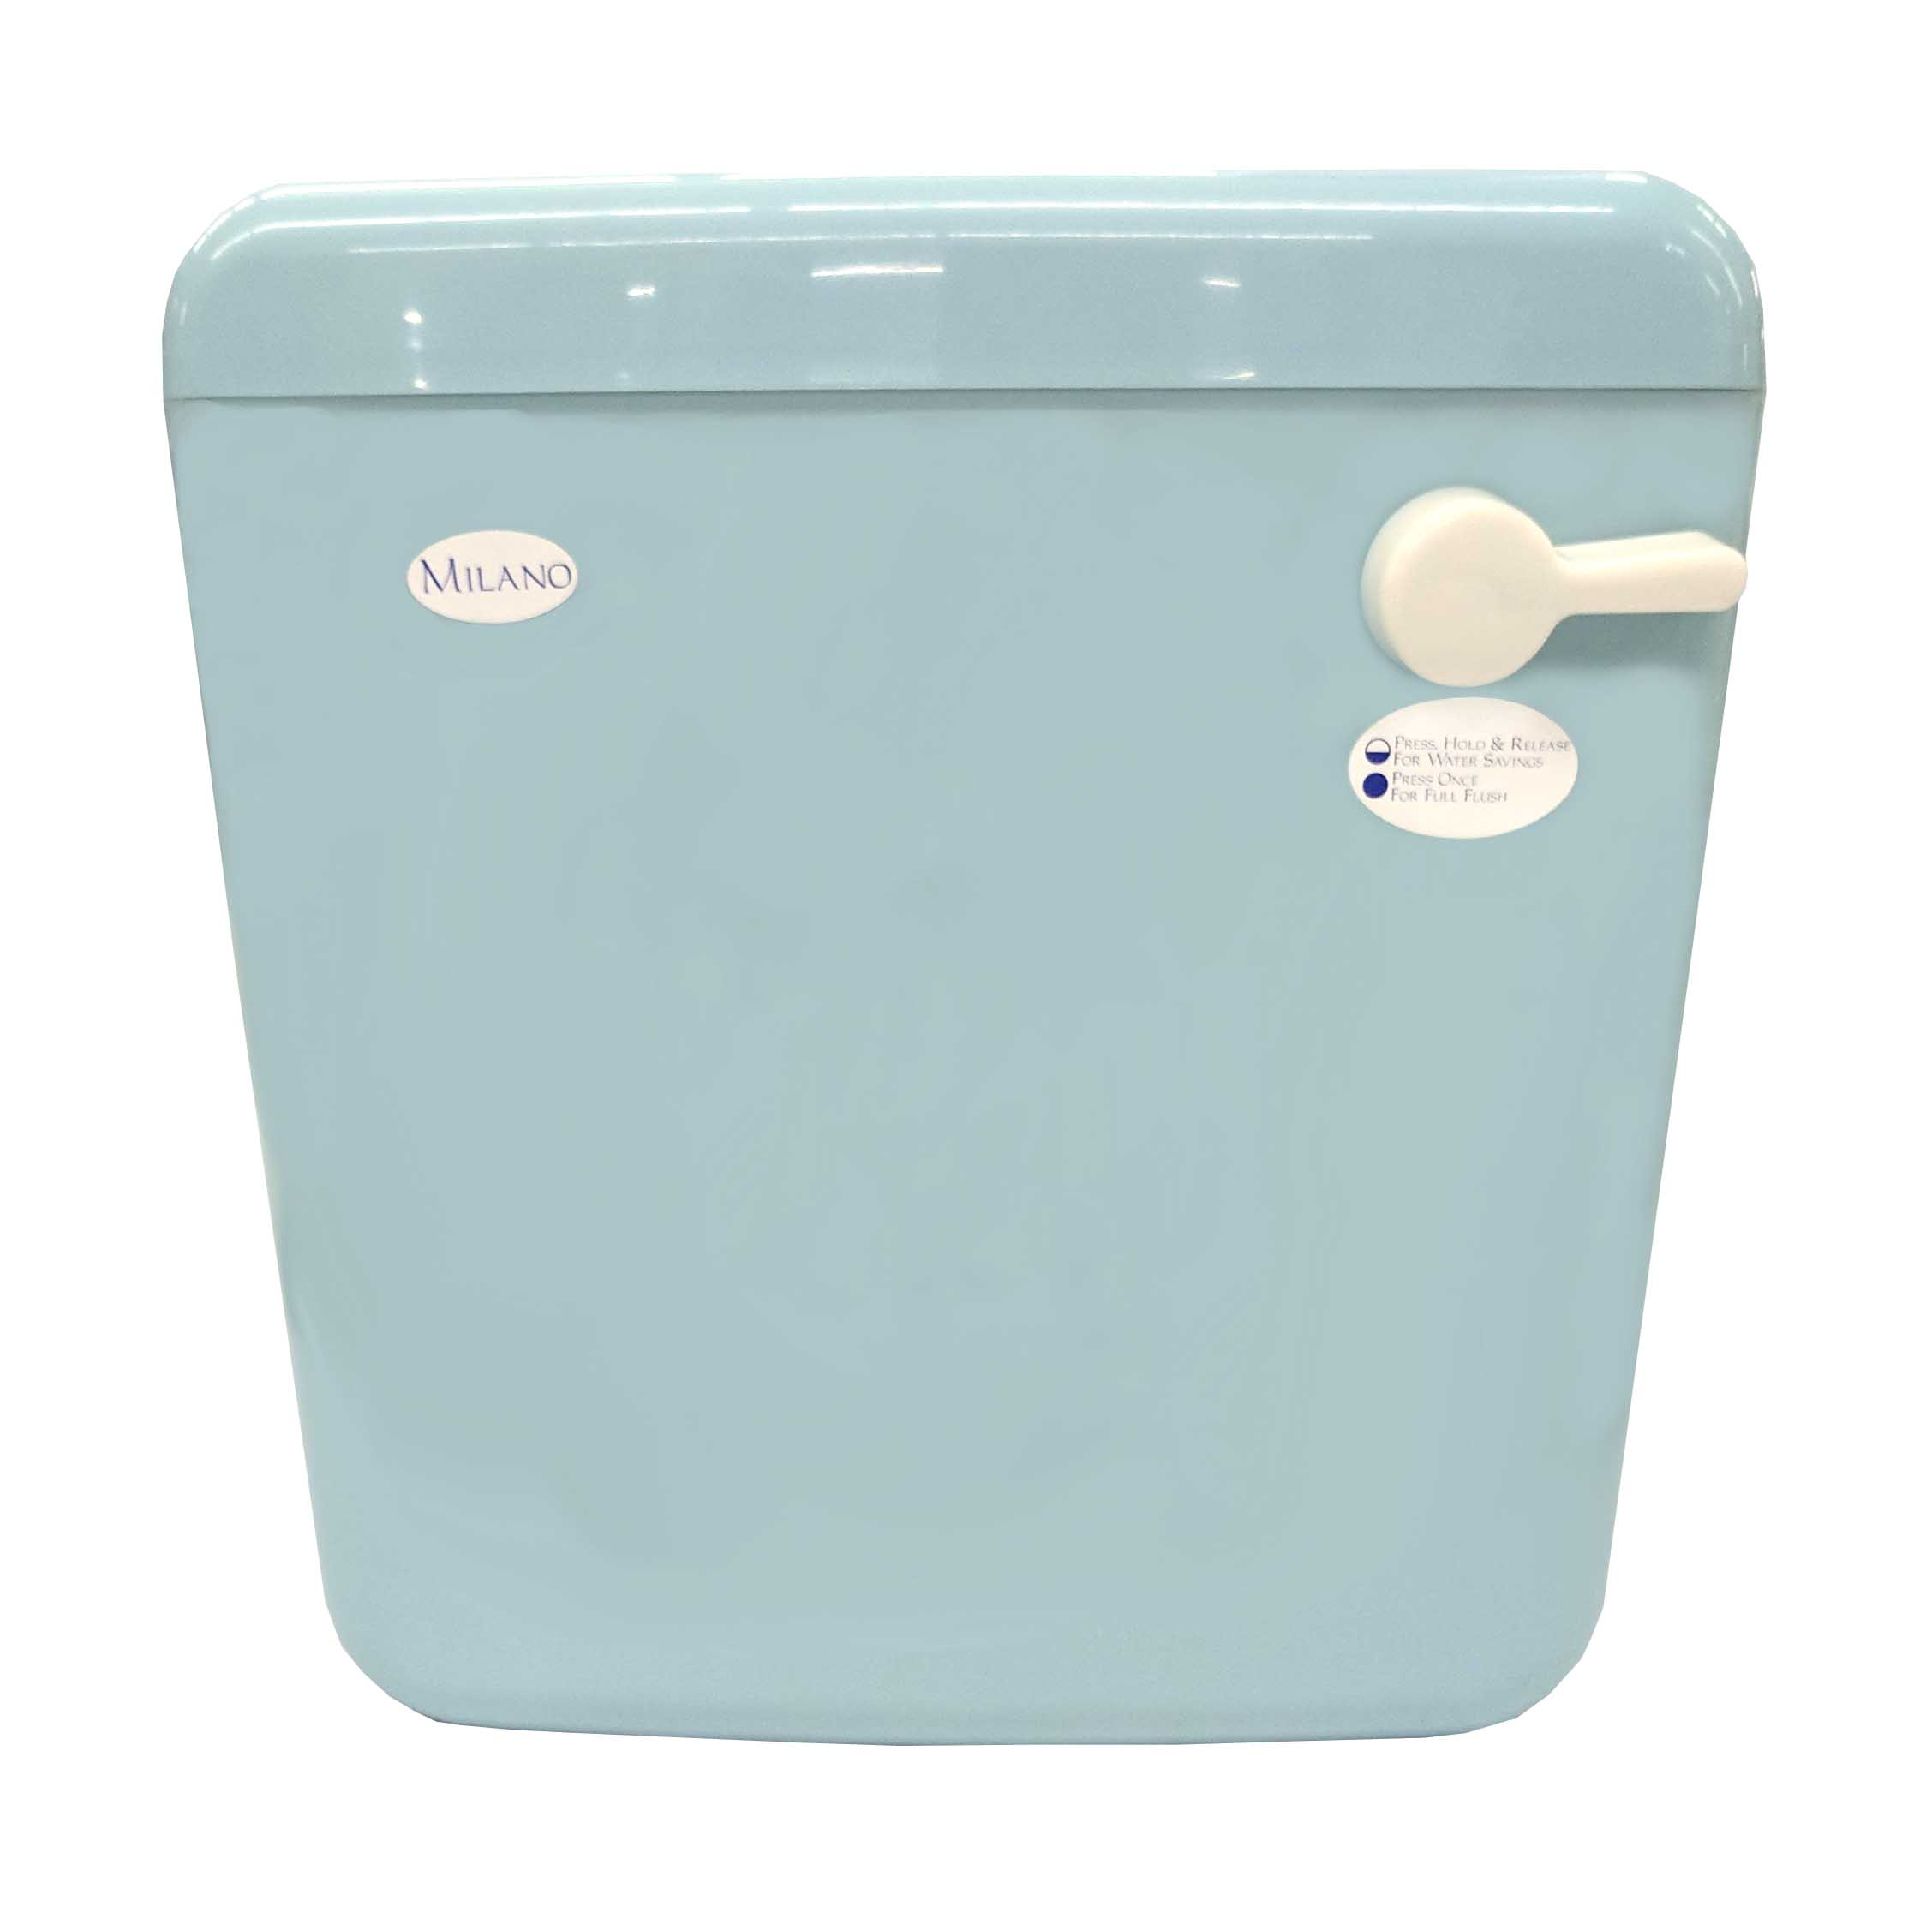 Milano Cistern Front Flush Sky Blue - Quincaillerie A1\'s Online Store